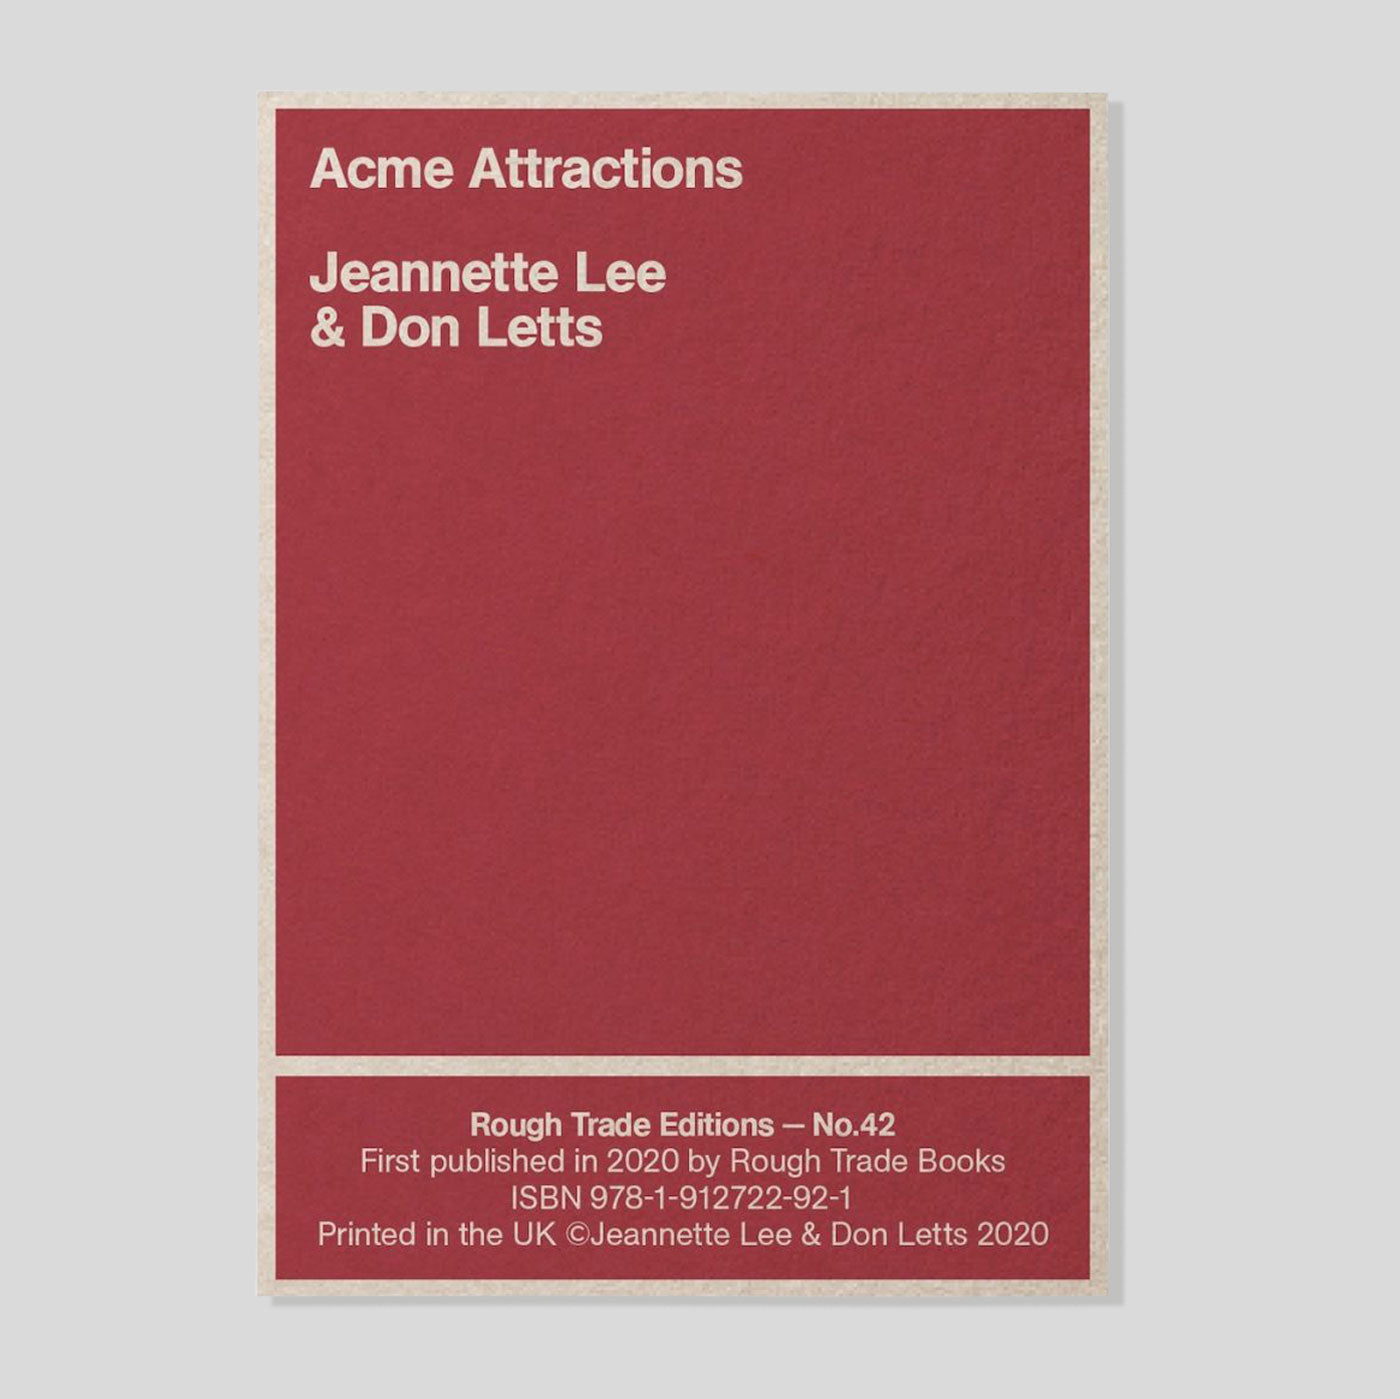 Acme Attractions | Jeannette Lee & Don Letts | Colours May Vary